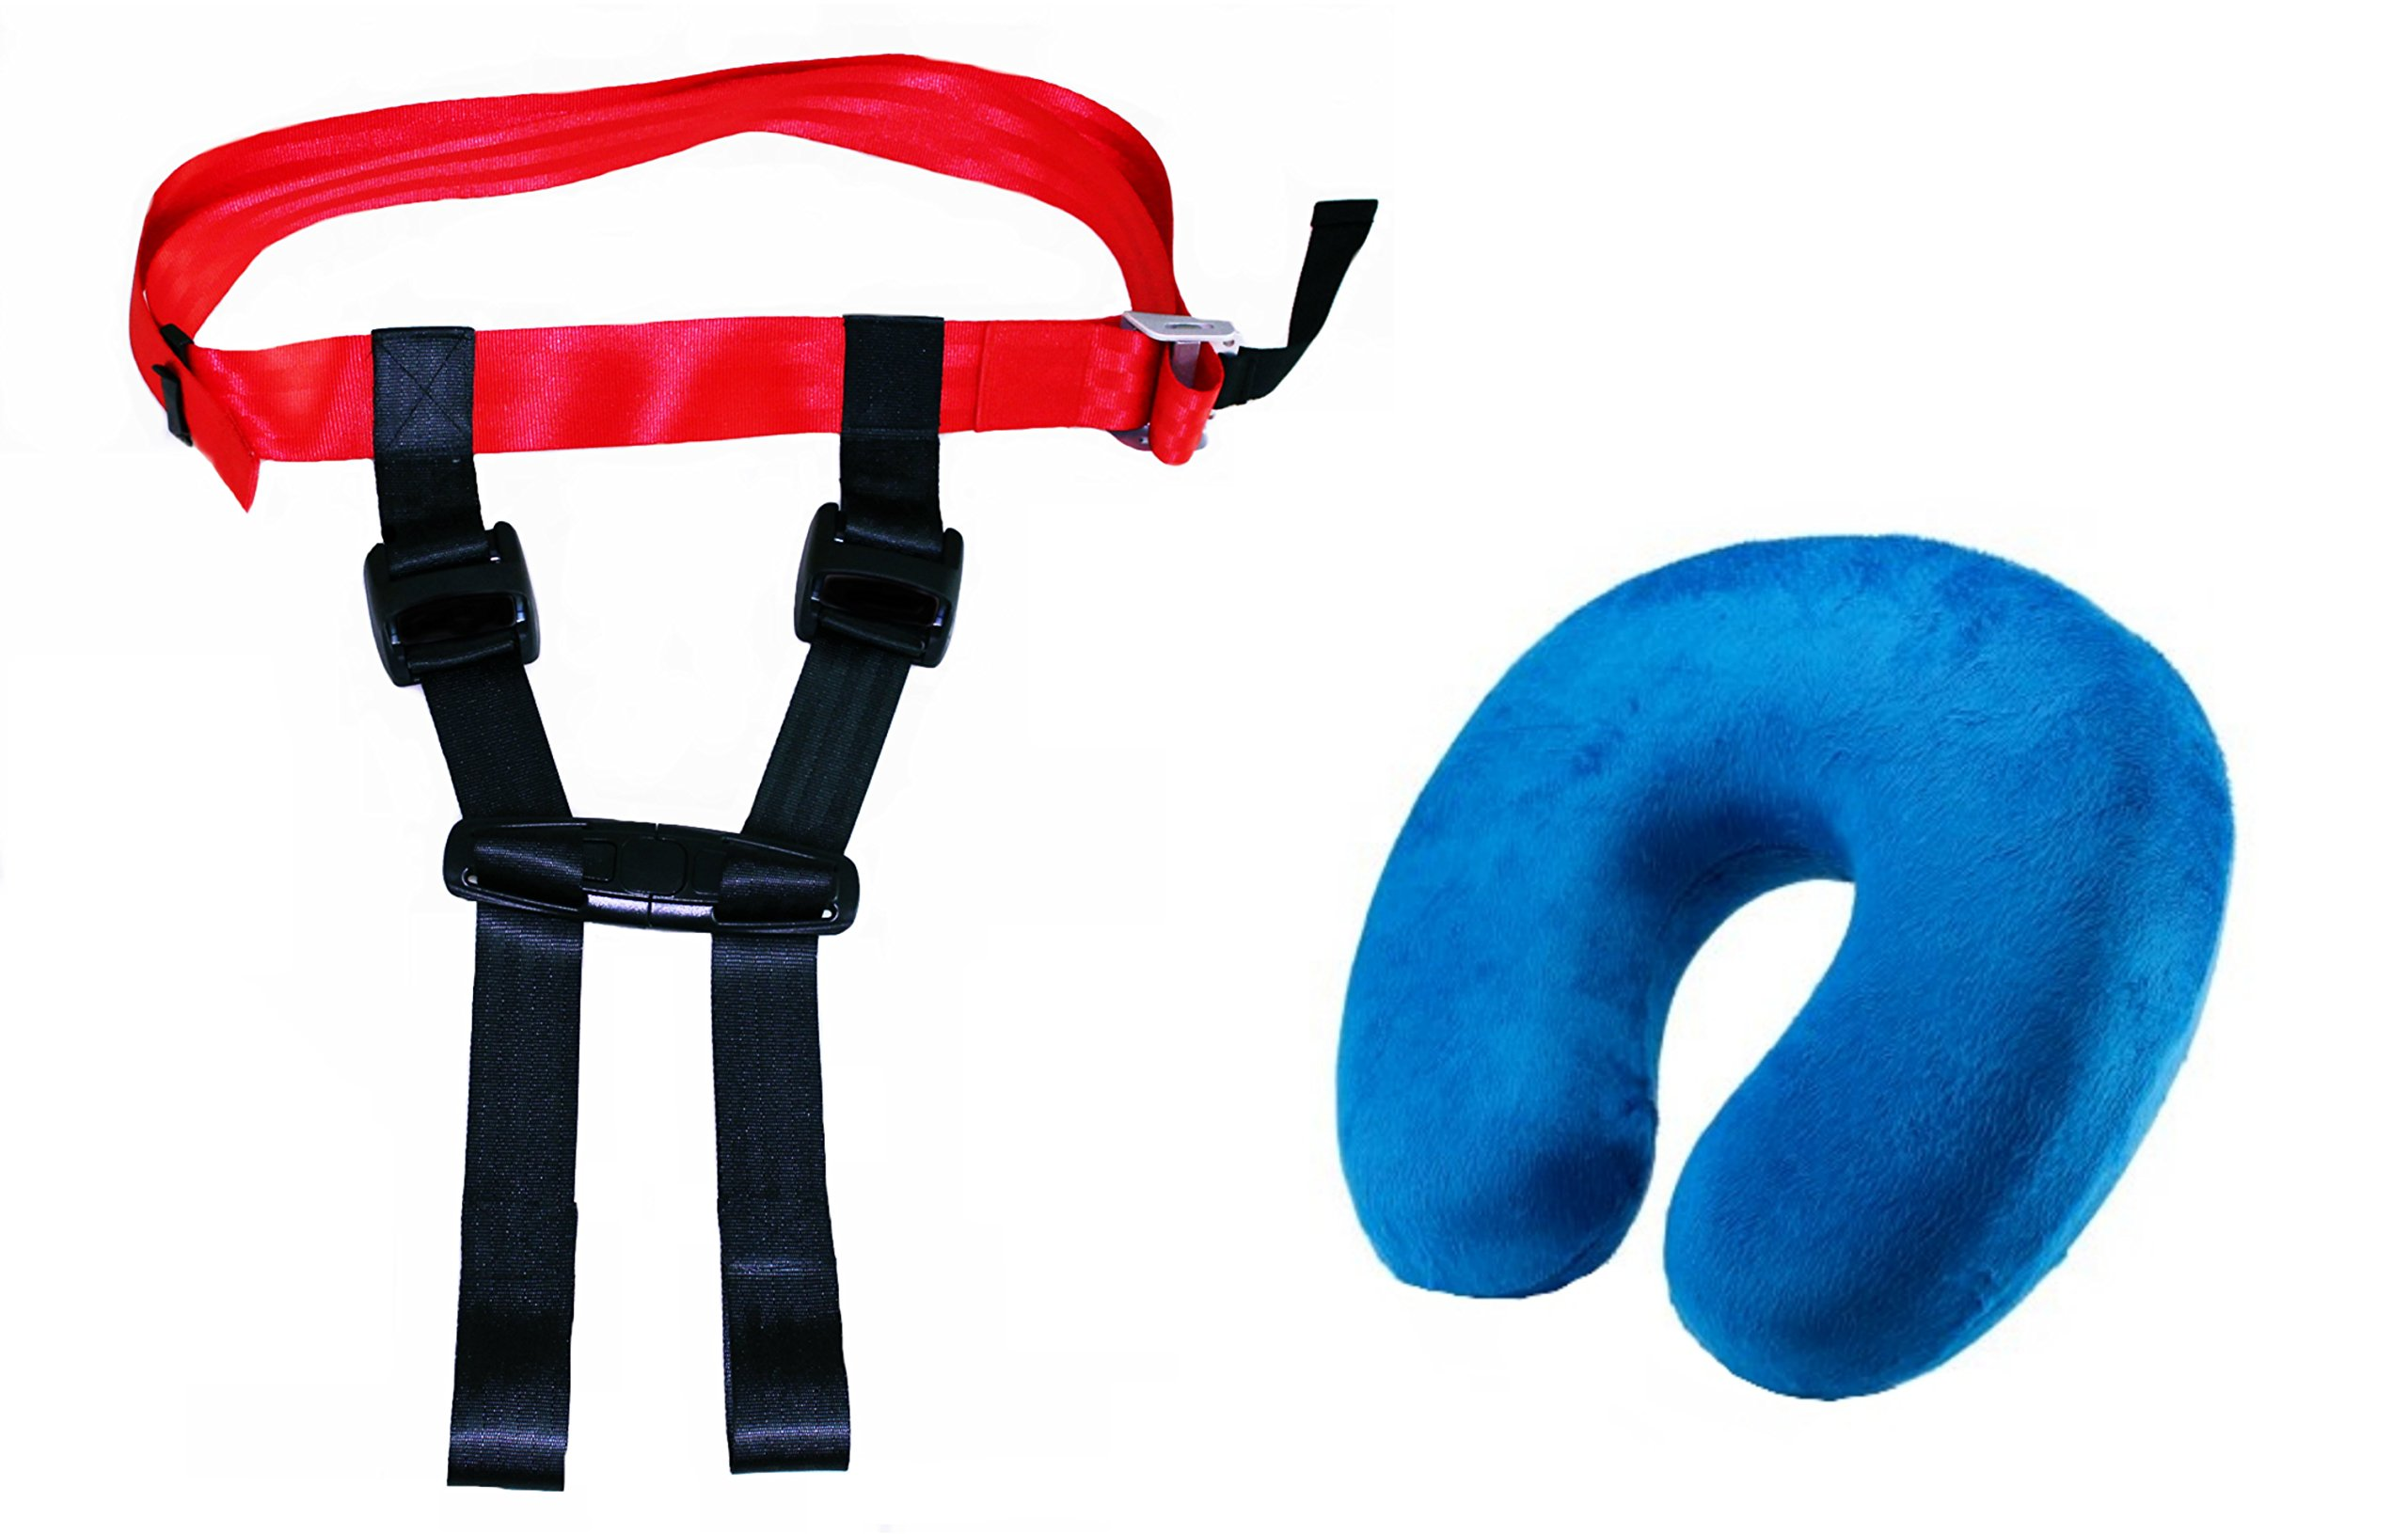 Thorium Safety Airplane Child Harness Strap Seat Belt Protector Complete with Comfortable Kids Travel Neck Pillow